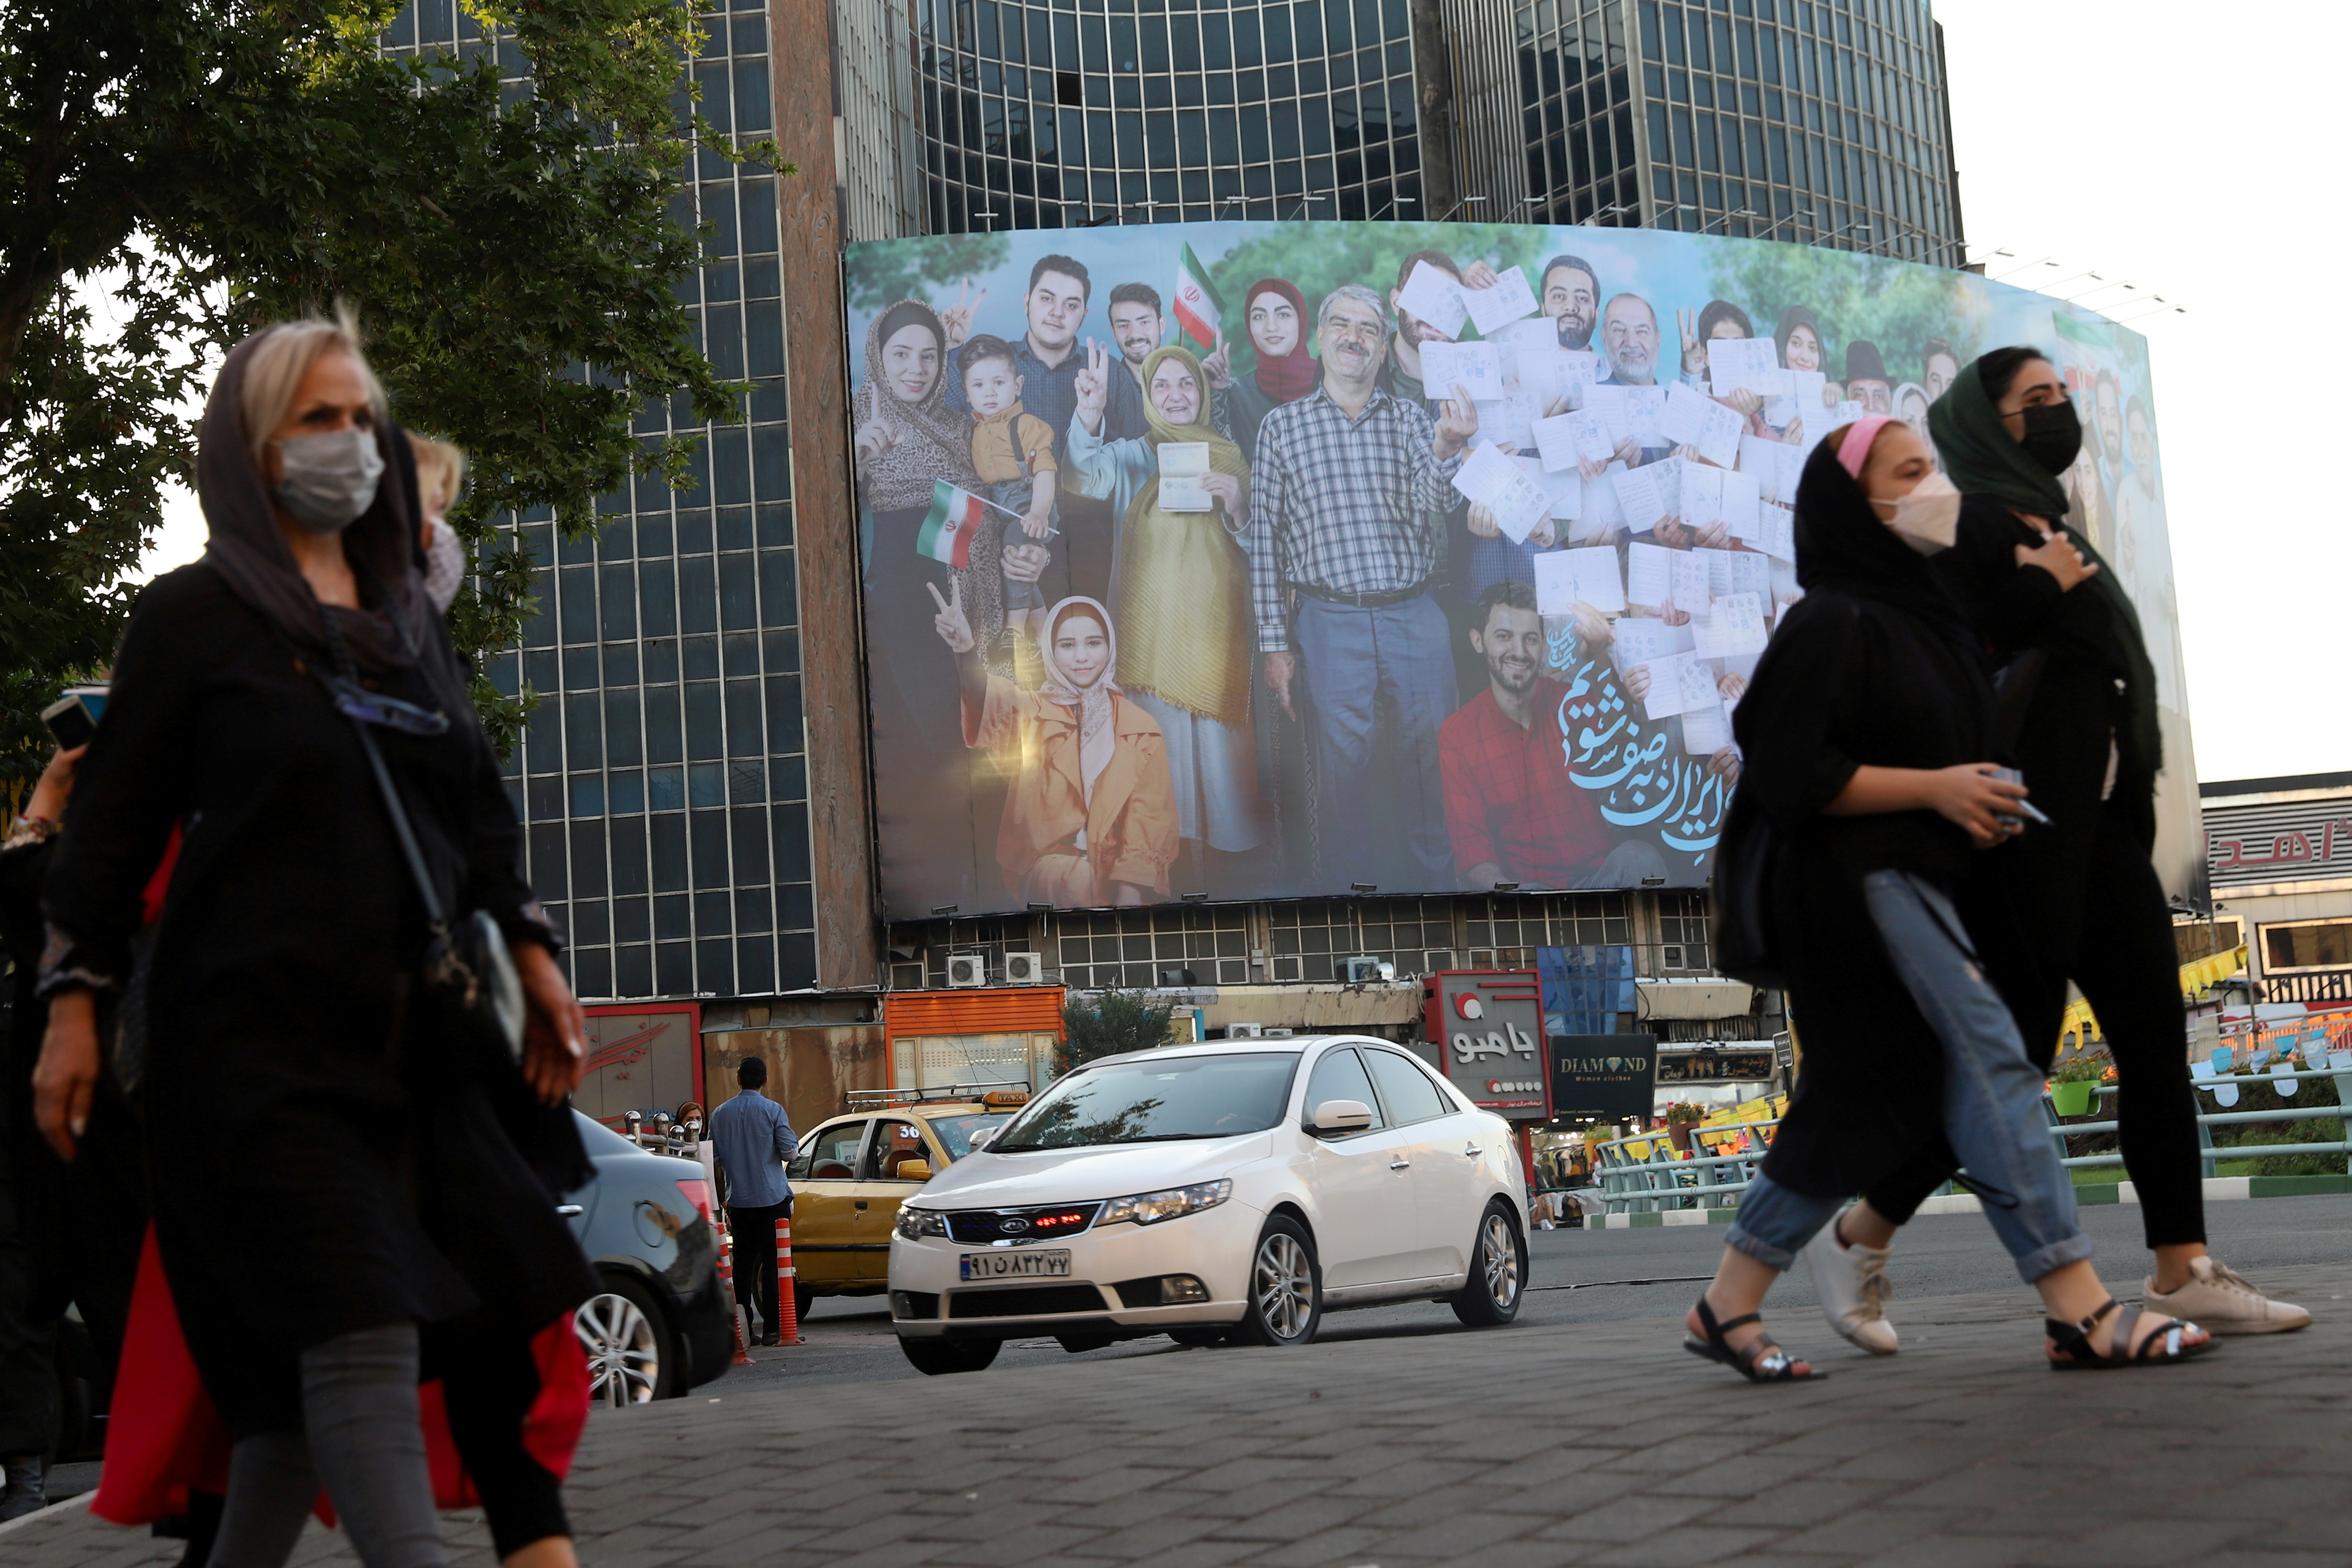 A banner of the presidential election is seen in Valiasr square in Tehran, Iran June 16, 2021. Majid Asgaripour/WANA (West Asia News Agency) via REUTERS